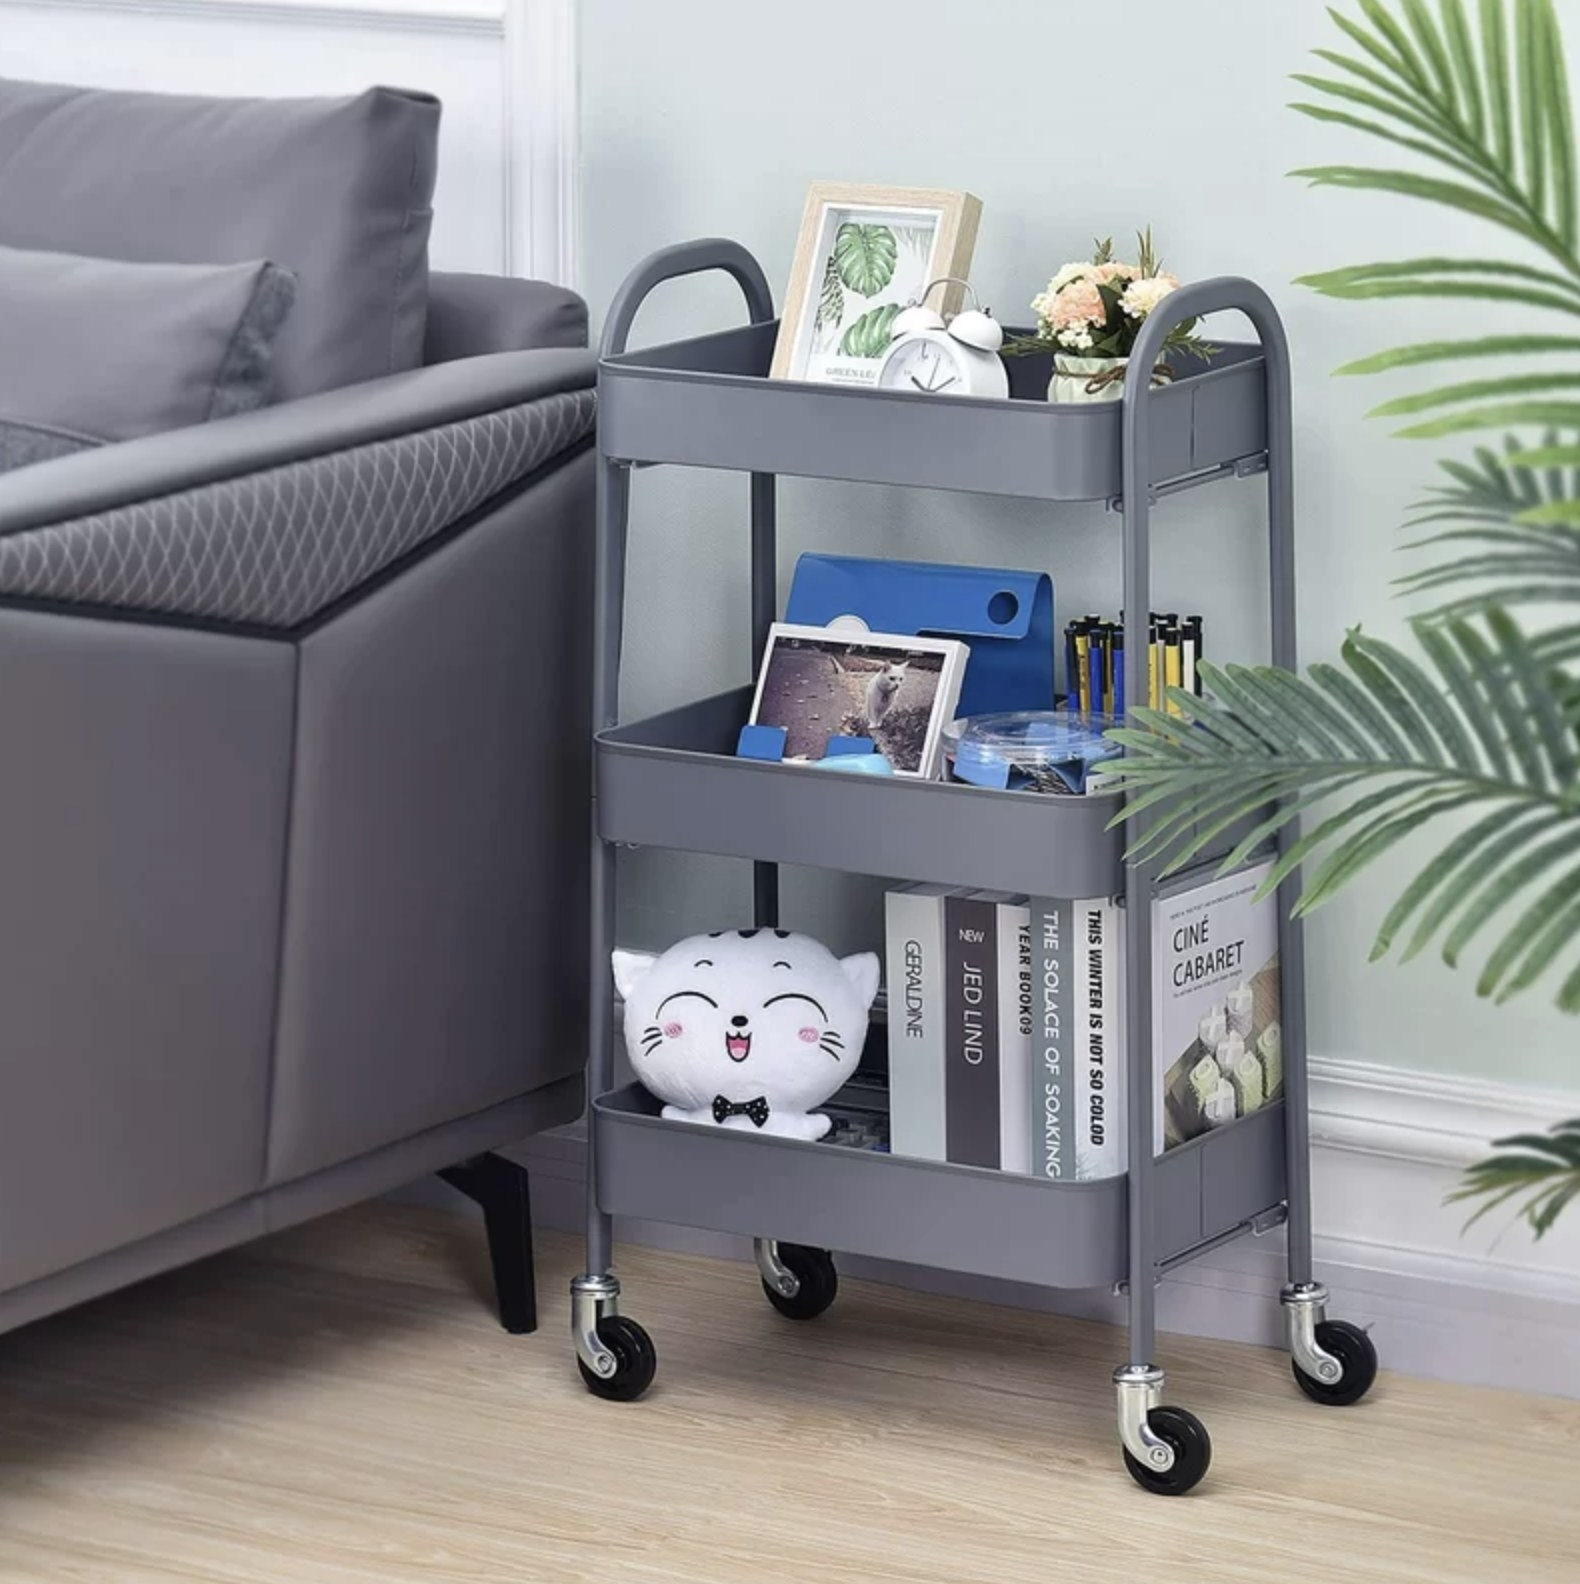 A grey three tier cart with books and decor inside